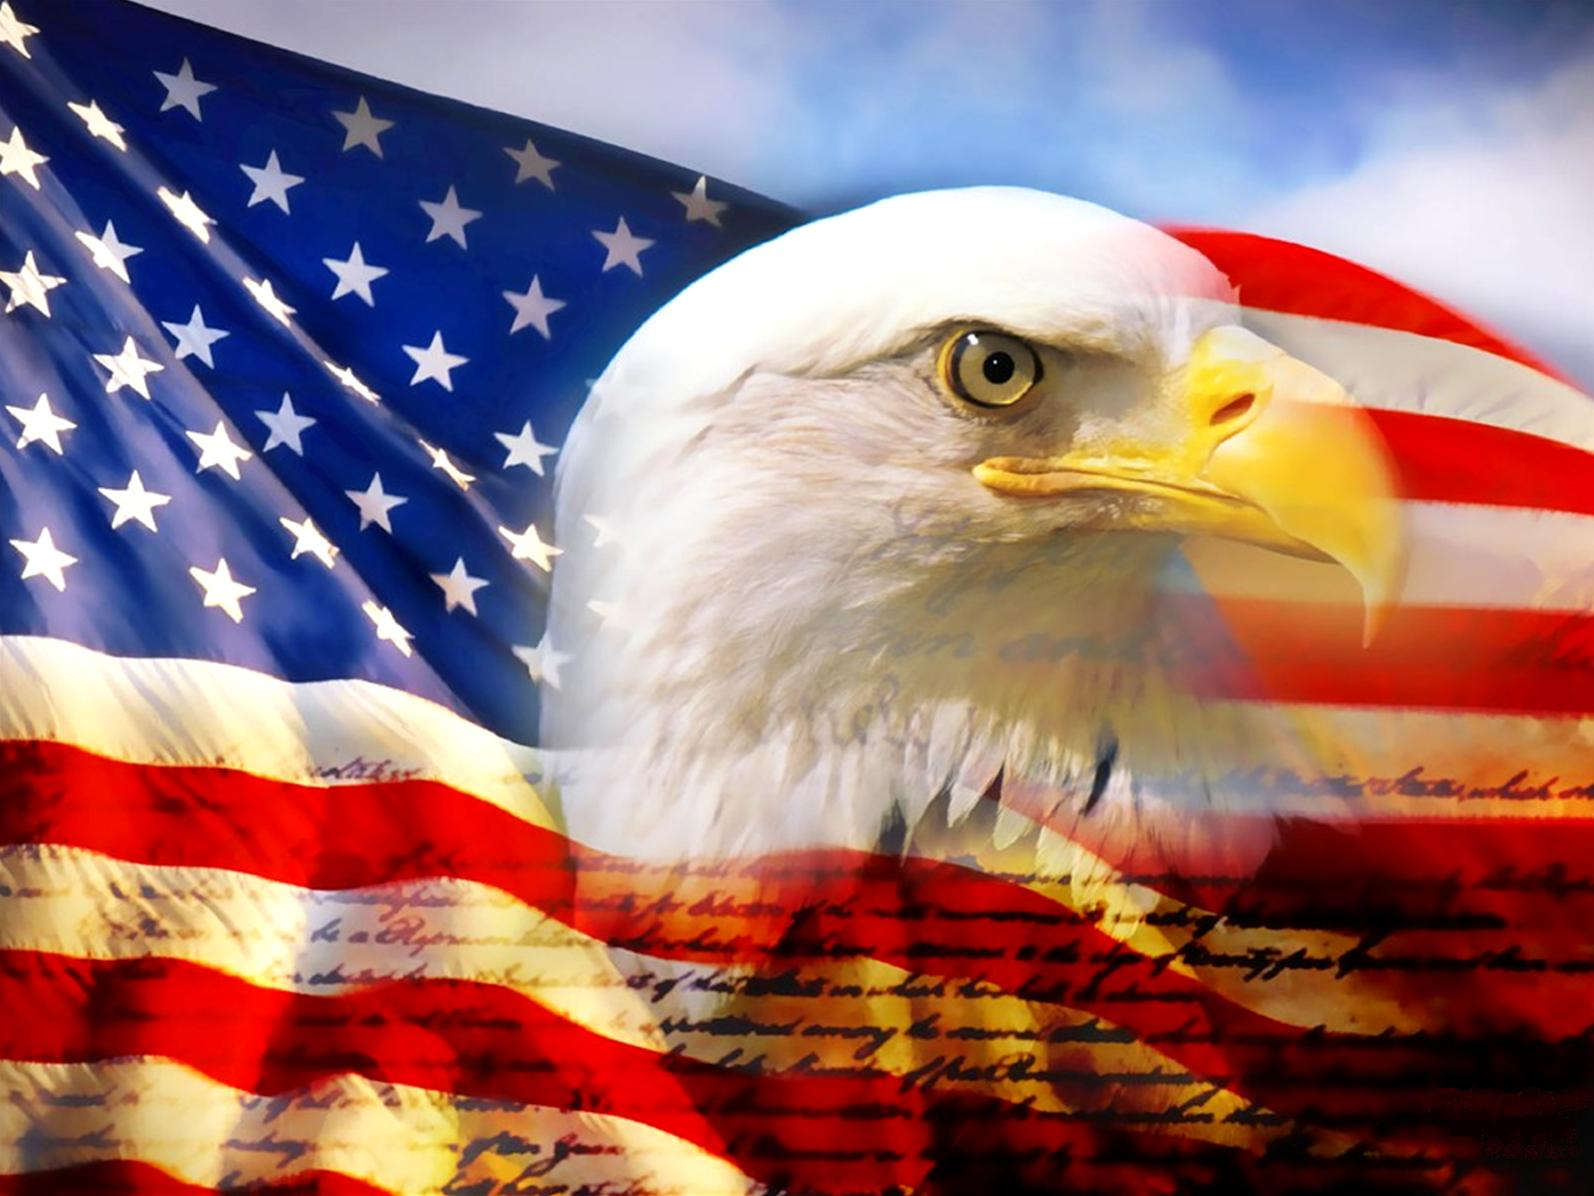 hd pictures of american flag with eagle